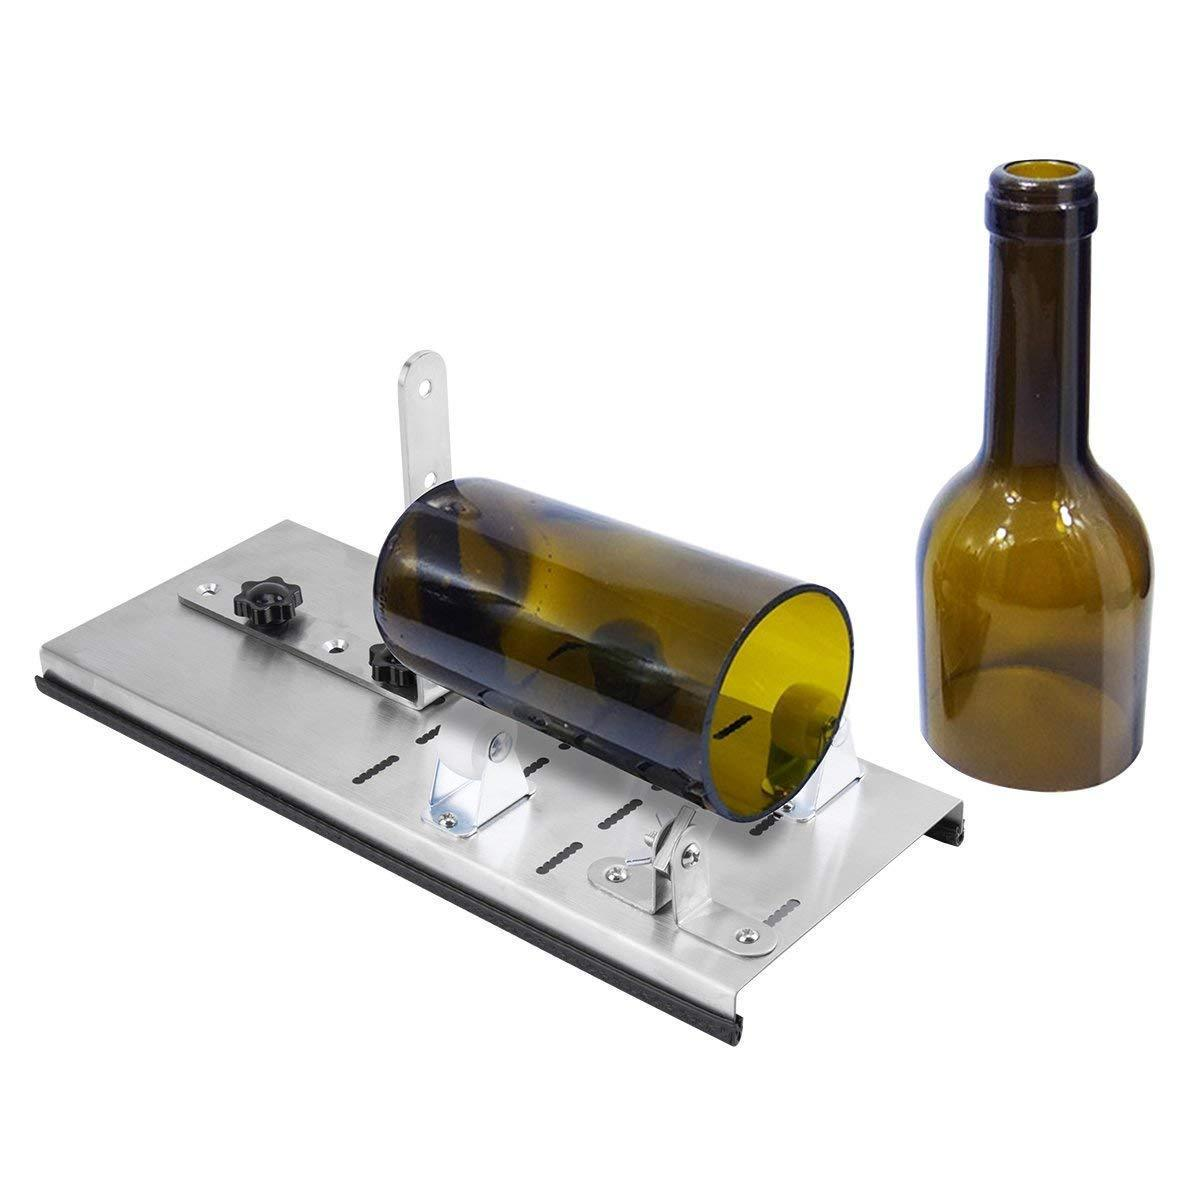 CraftsmanCapitol™ Premium Handy Easy Glass Bottle Cutter - Craftsman Capitol